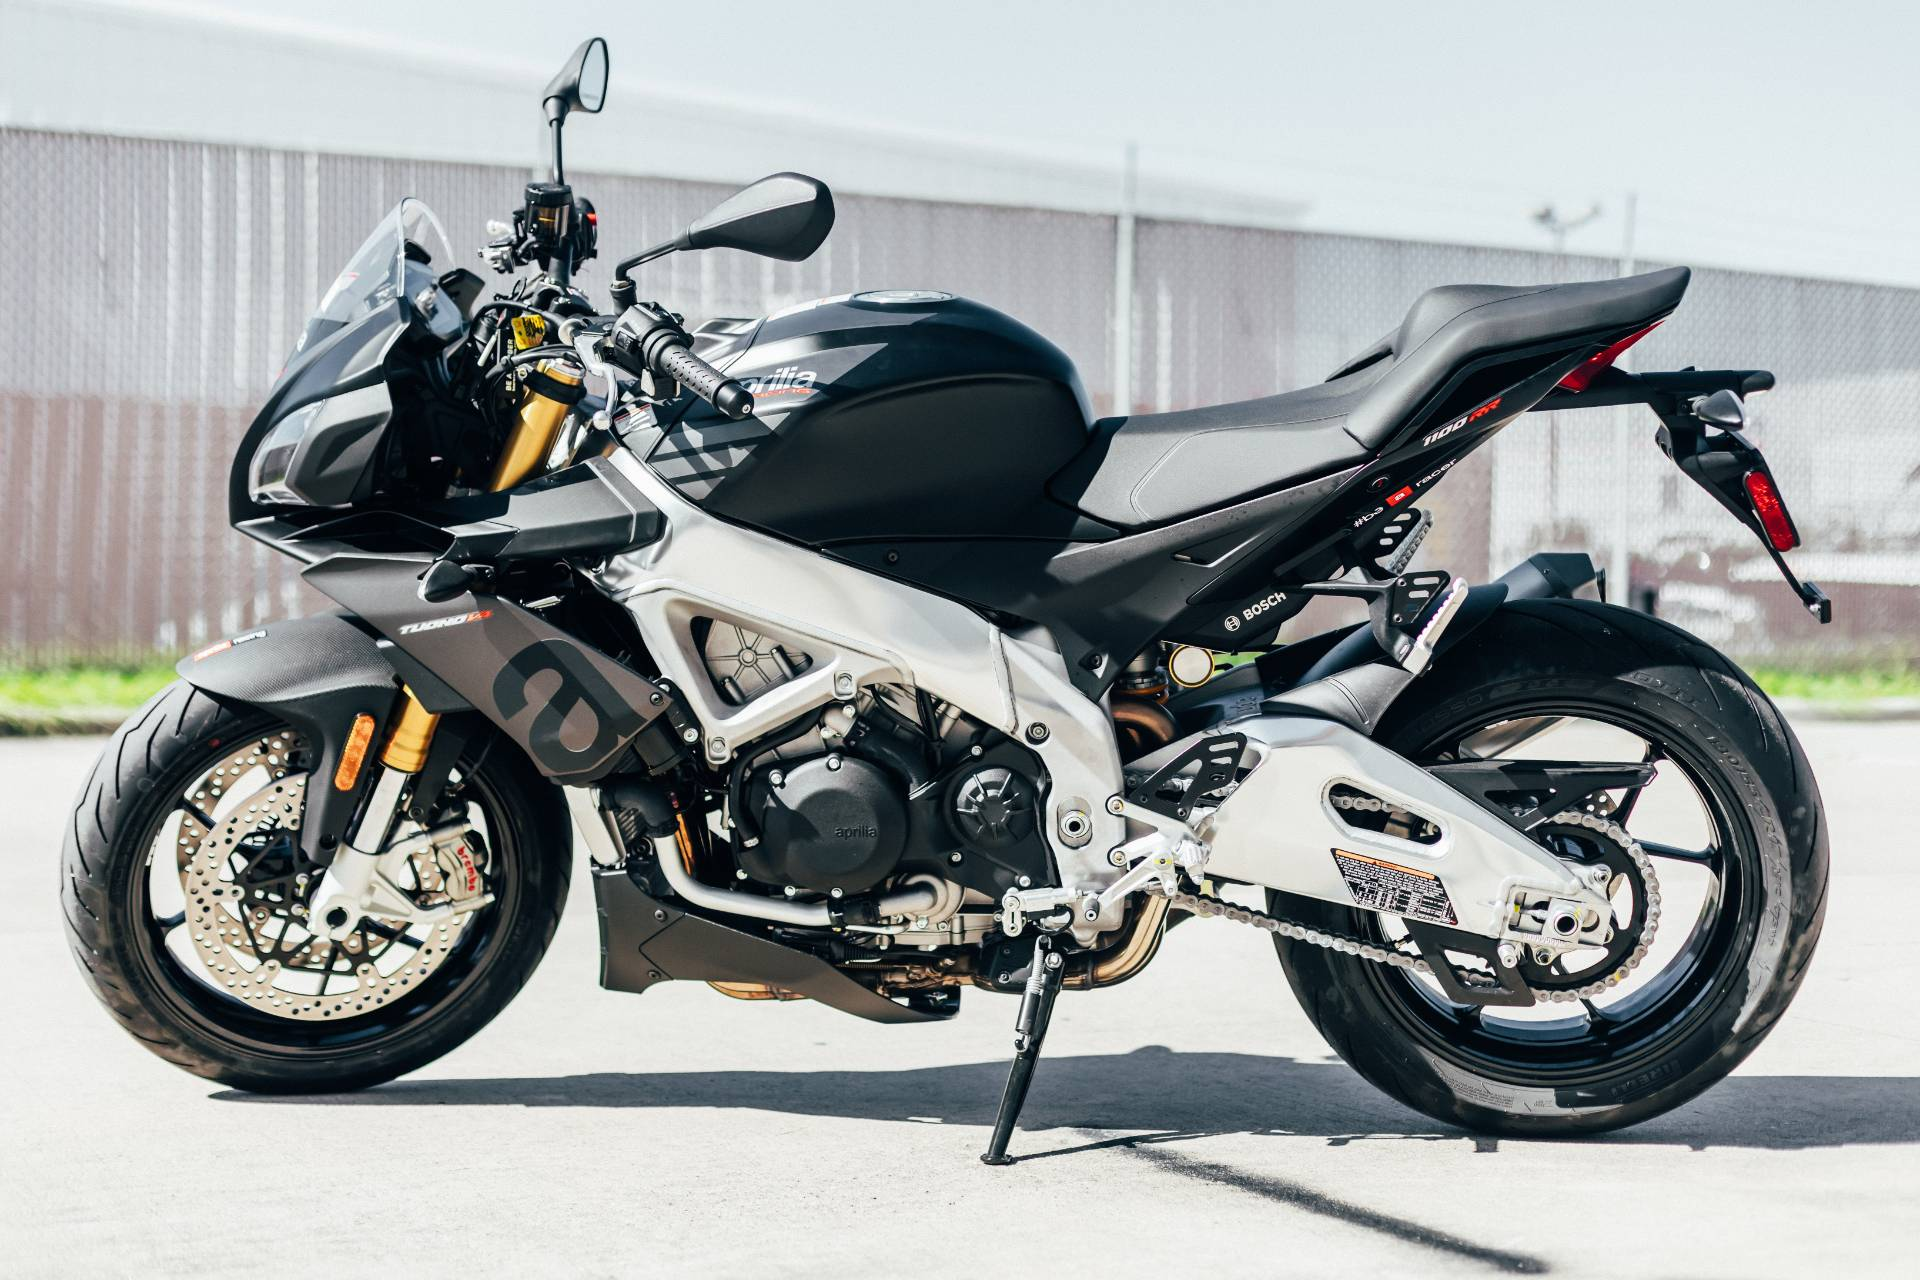 New 2020 Aprilia Tuono V4 1100 Rr Abs Motorcycles In Houston Tx Stock Number A001224